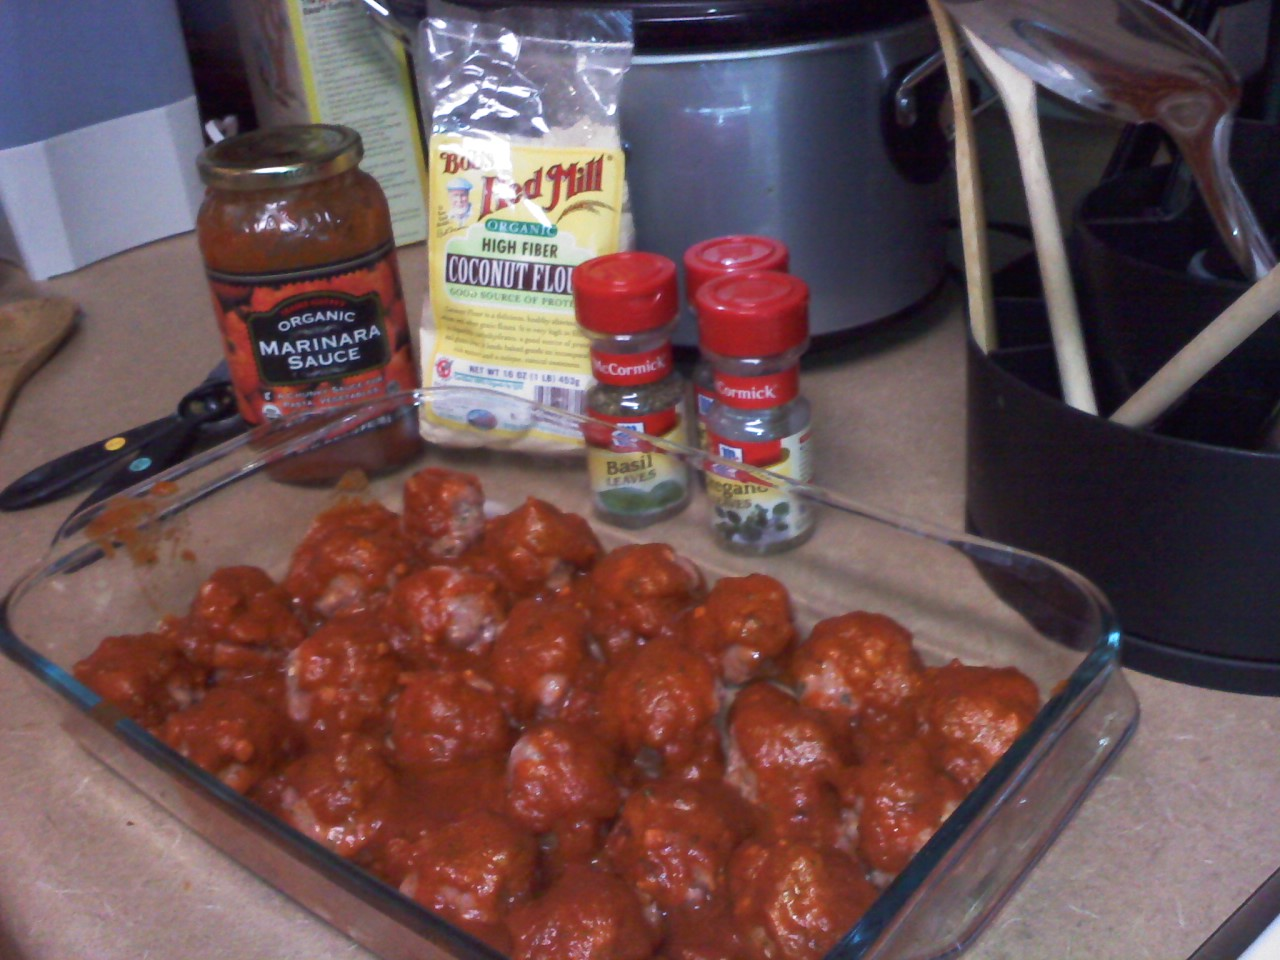 Homemade Meatballs with Sauce